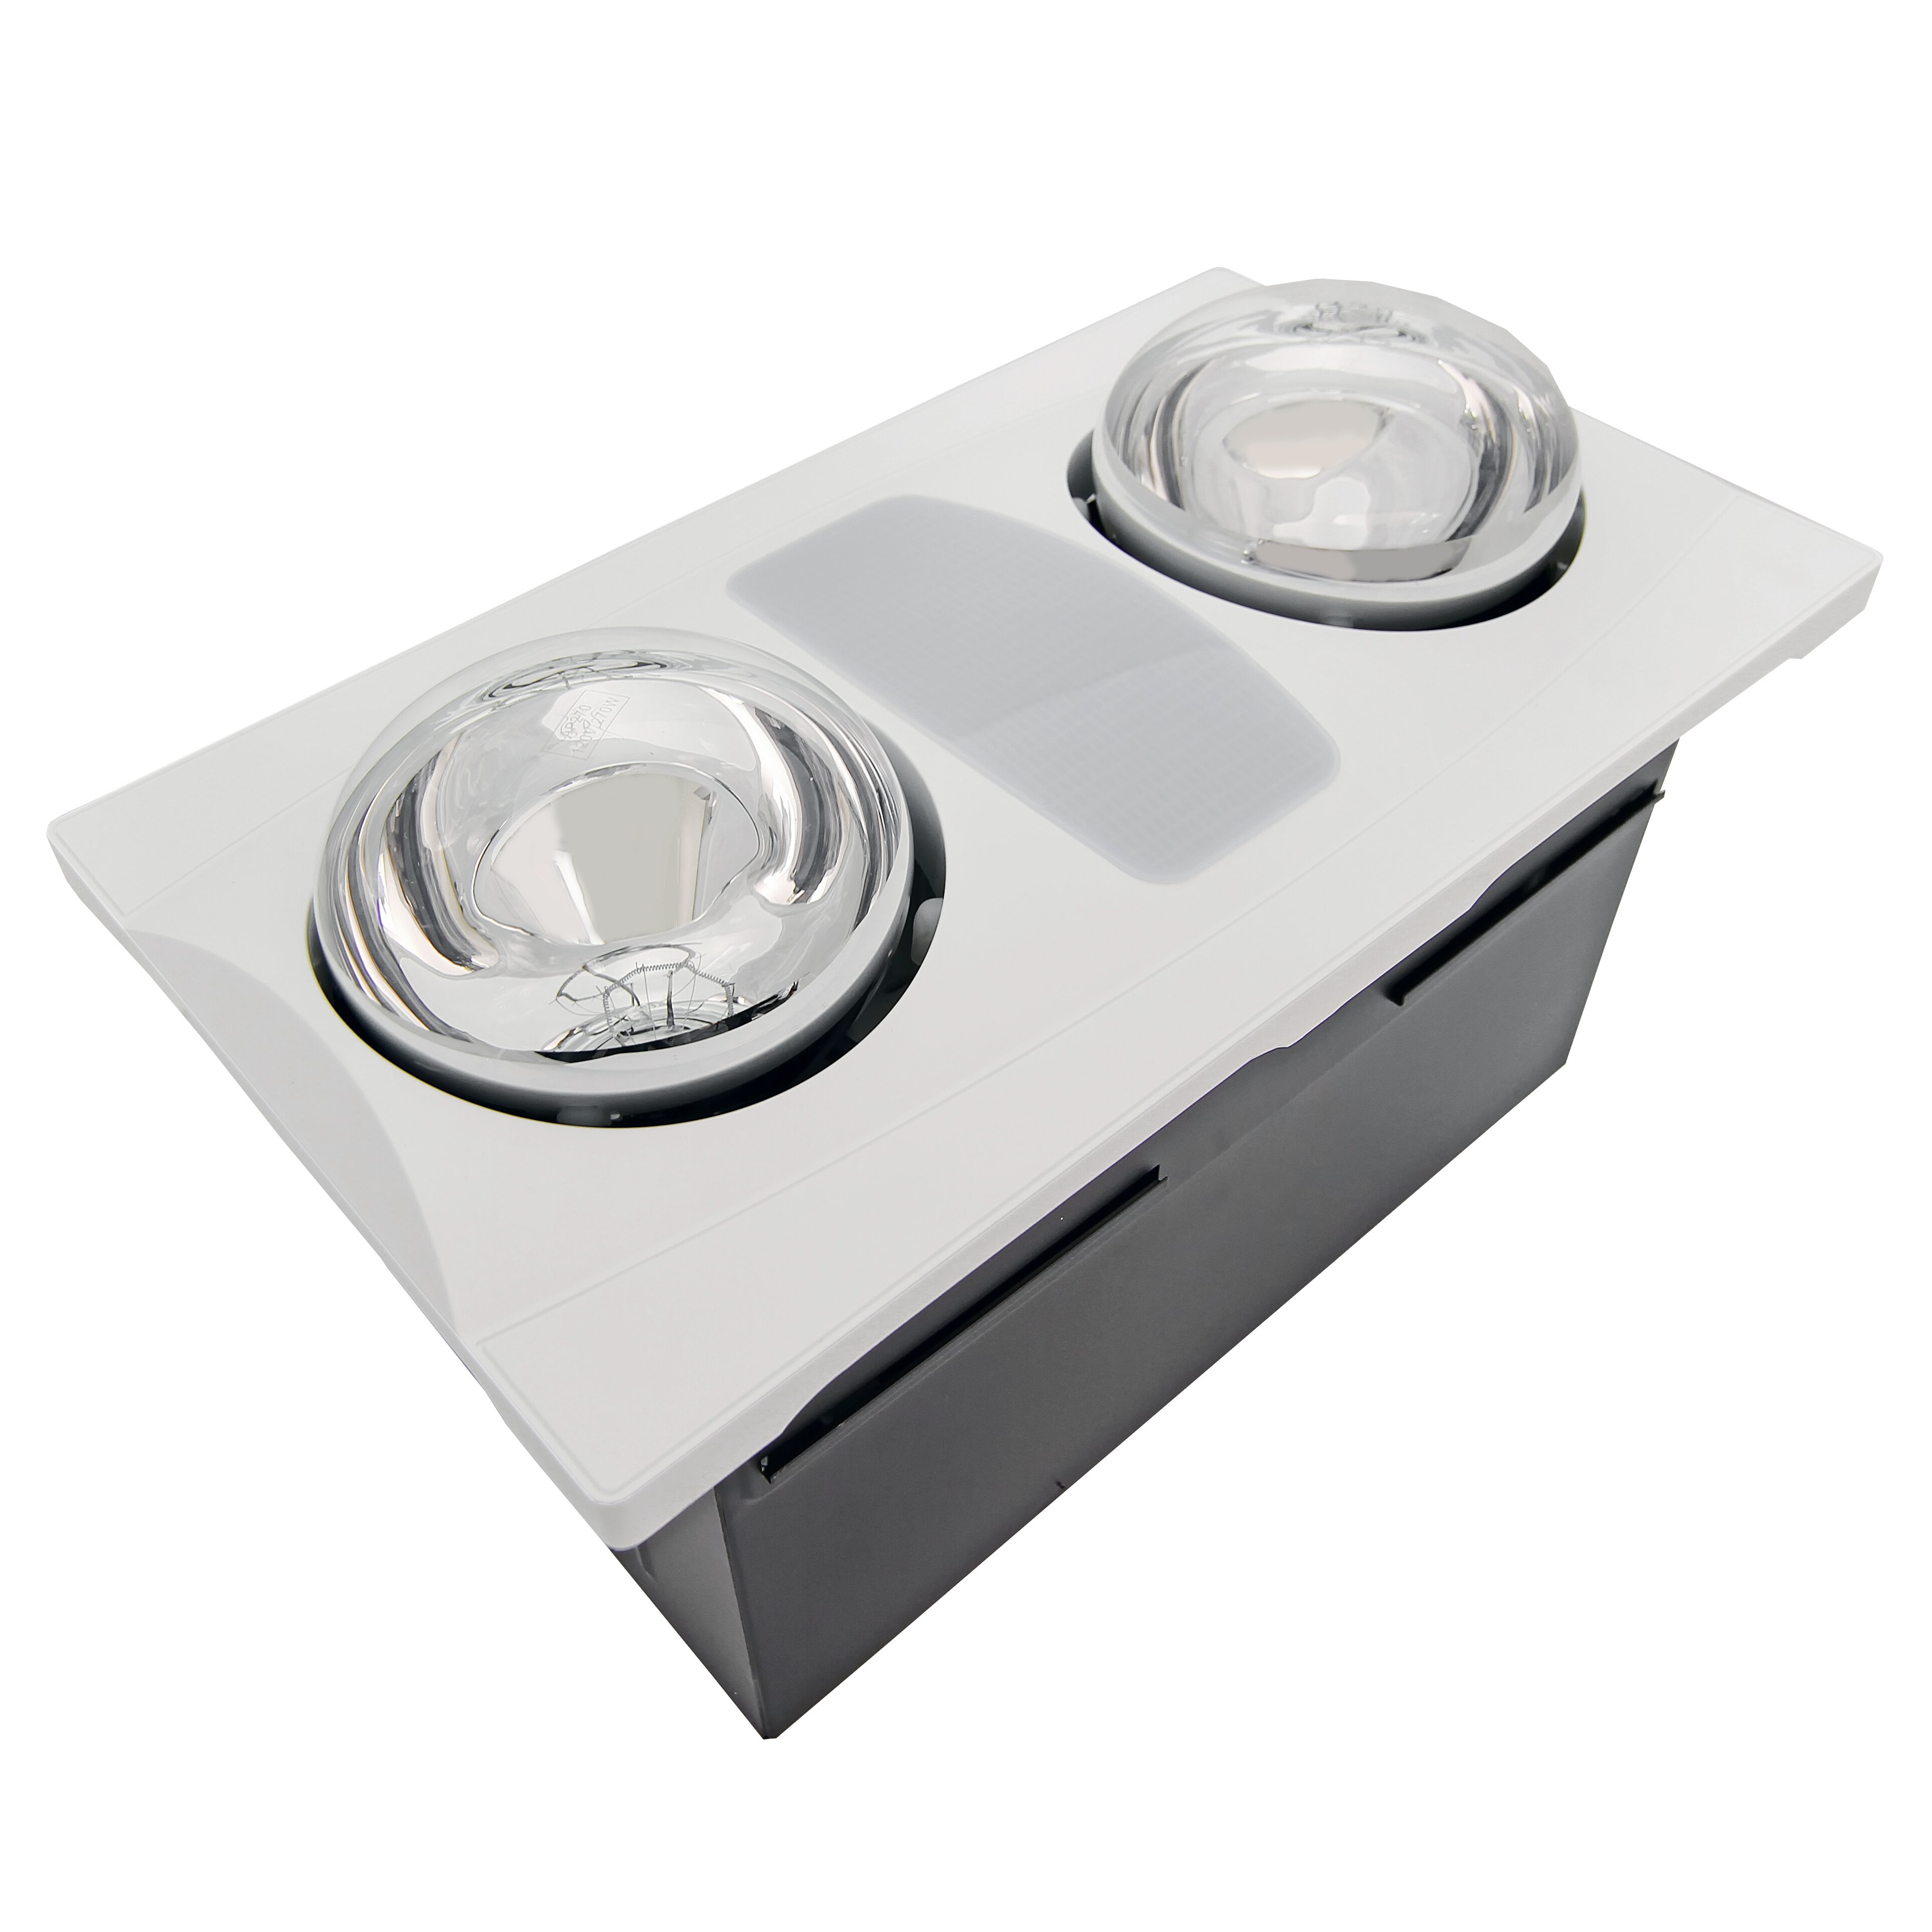 Infrared Bathroom Light Aero Pure 80 Cfm Bathroom Fan With Heater And Light Reviews